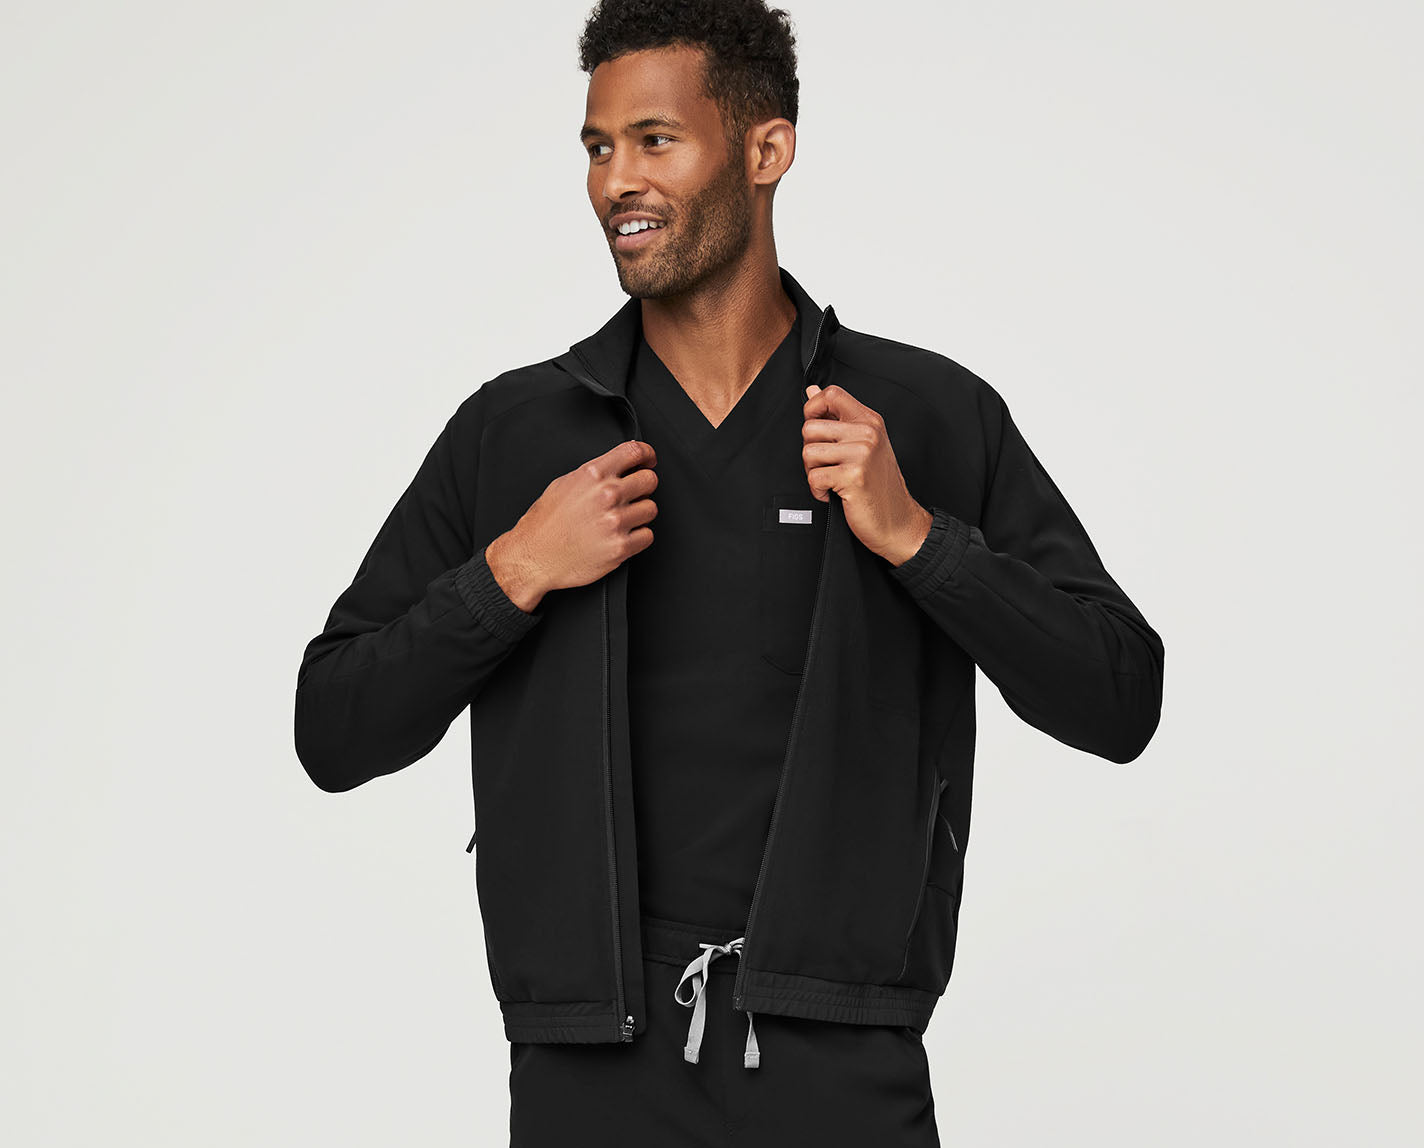 Cool on every layer. The Cobaki Scrub Jacket features a back yoke vent for airflow and ventilation, a mesh lining for breathability and temperature regulation, TPU trim and detailing, five functional pockets and both our proprietary FIONx fabric and eco-friendly FIONlite fabric. Like, the coolest.